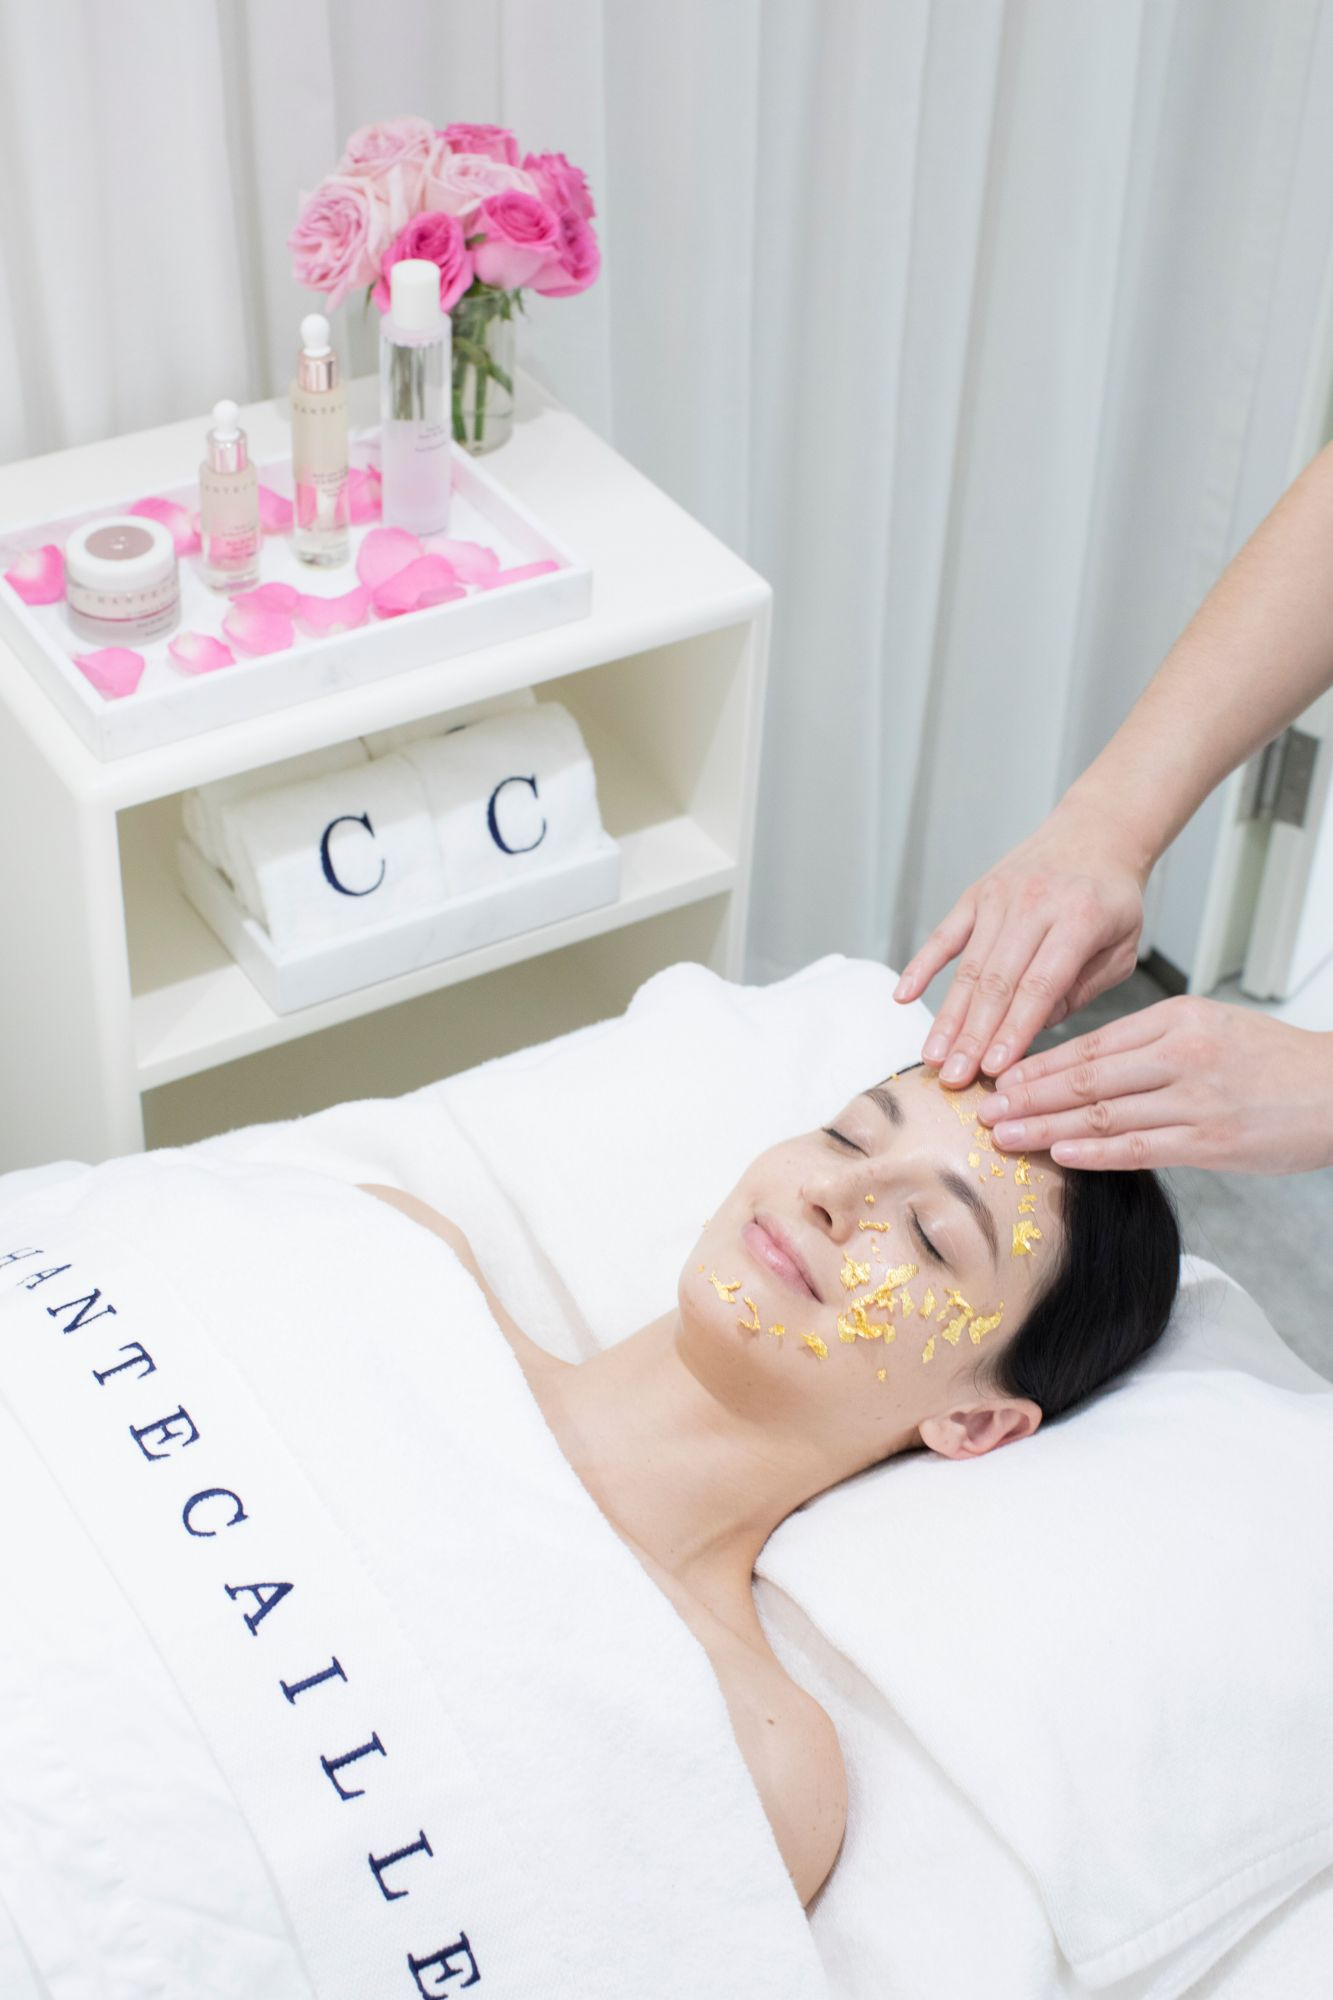 5 Beauty Brand Spas In Hong Kong—And The Treatments To Try